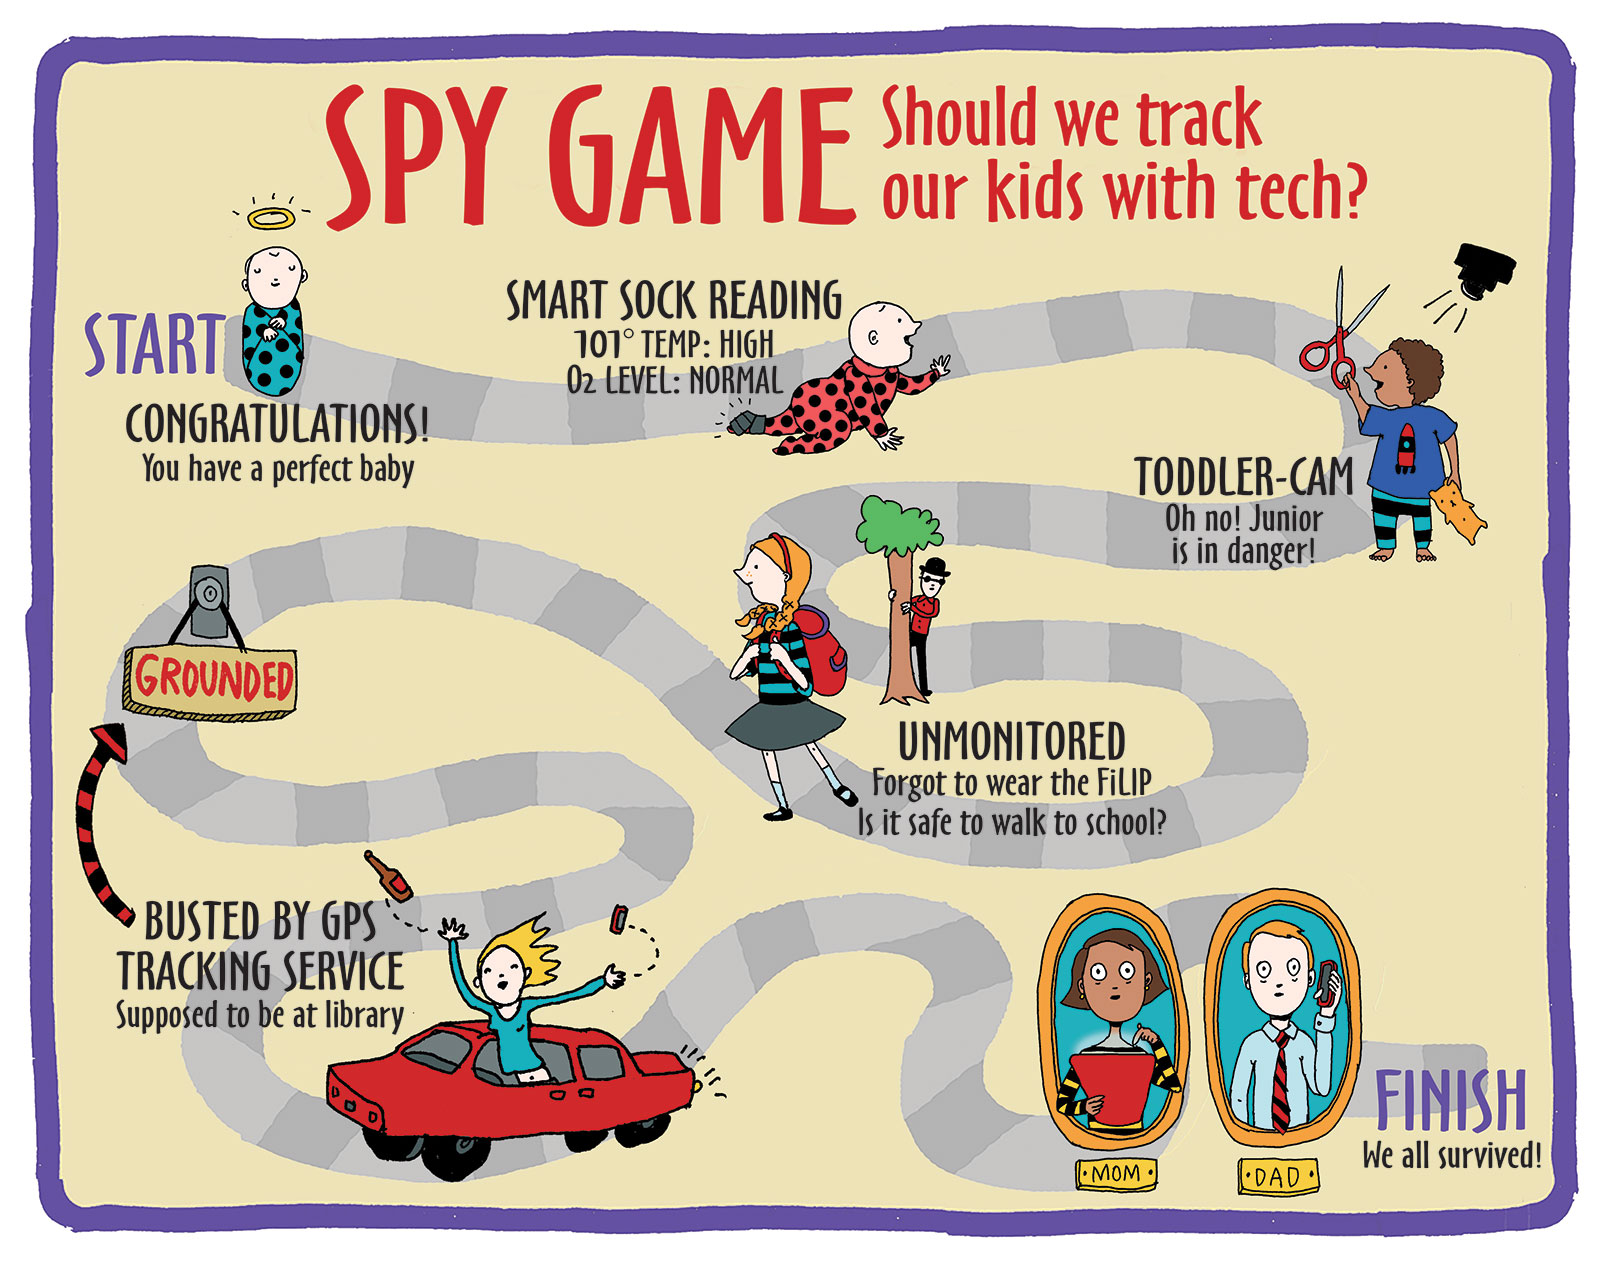 Spy Game: Should We Track Our Kids with Tech? Illustrated by Allie Arnold Illustrations